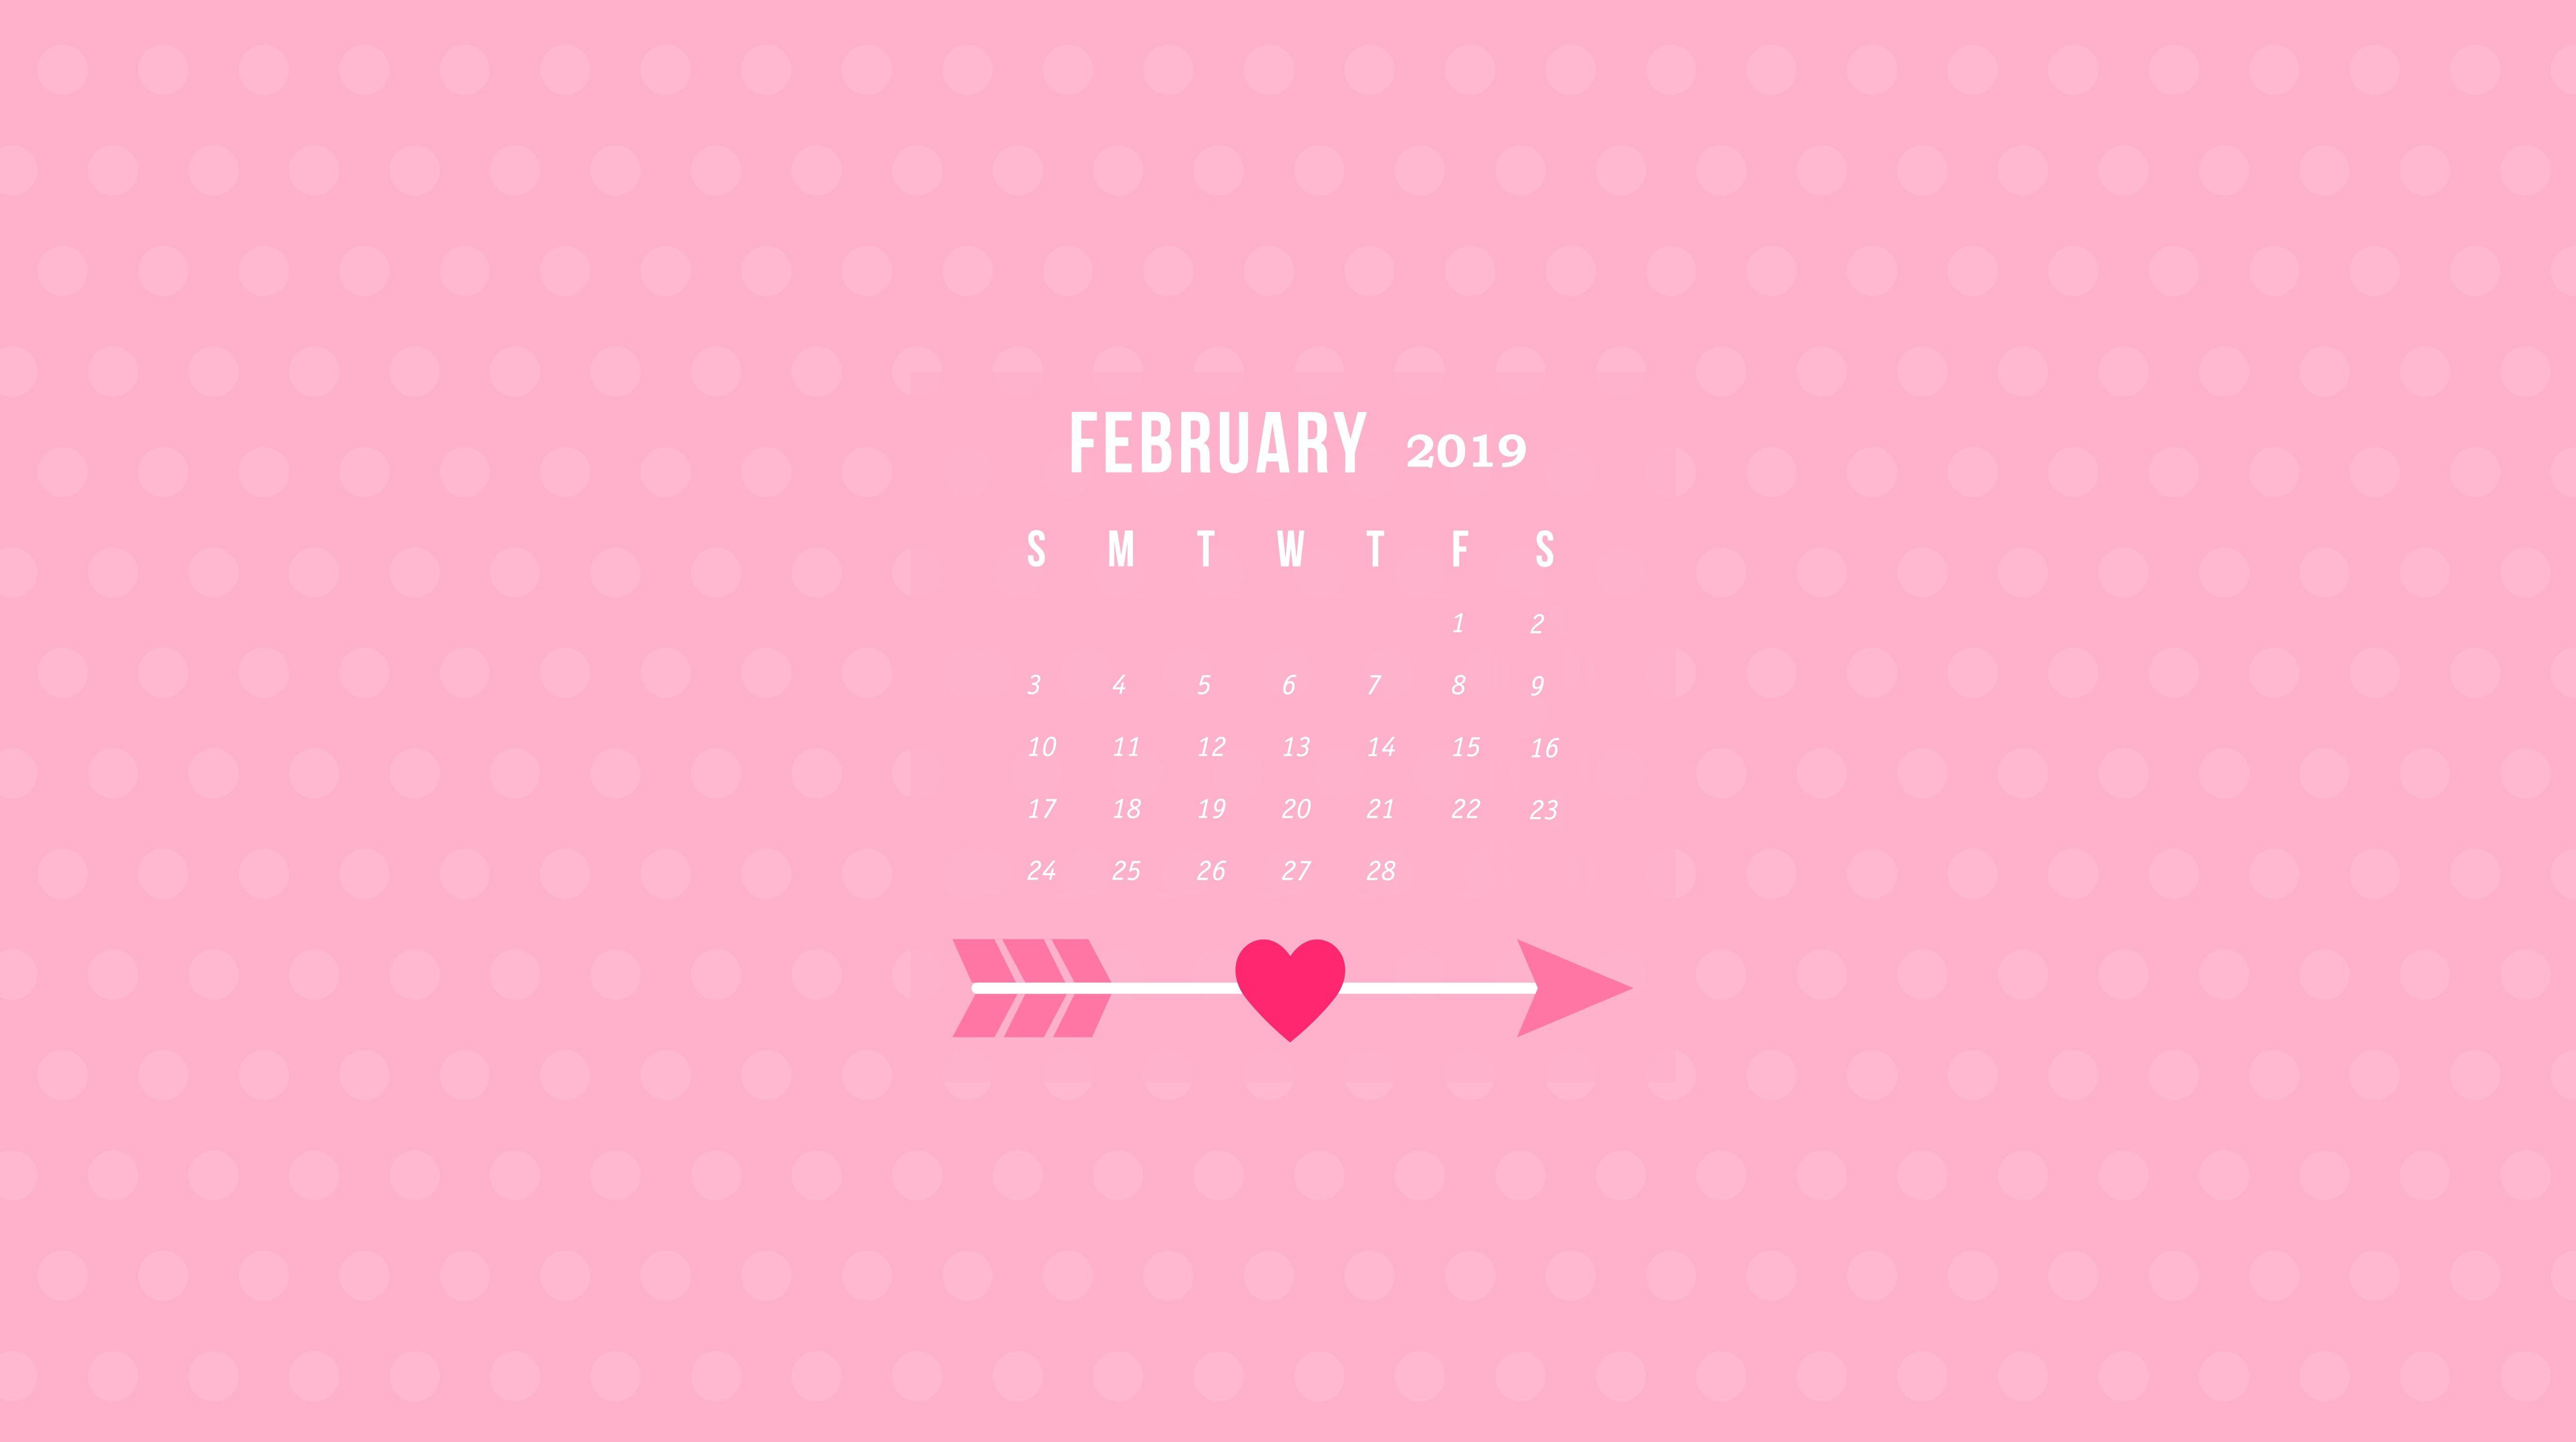 Wallpaper For February Posted By Ethan Sellers